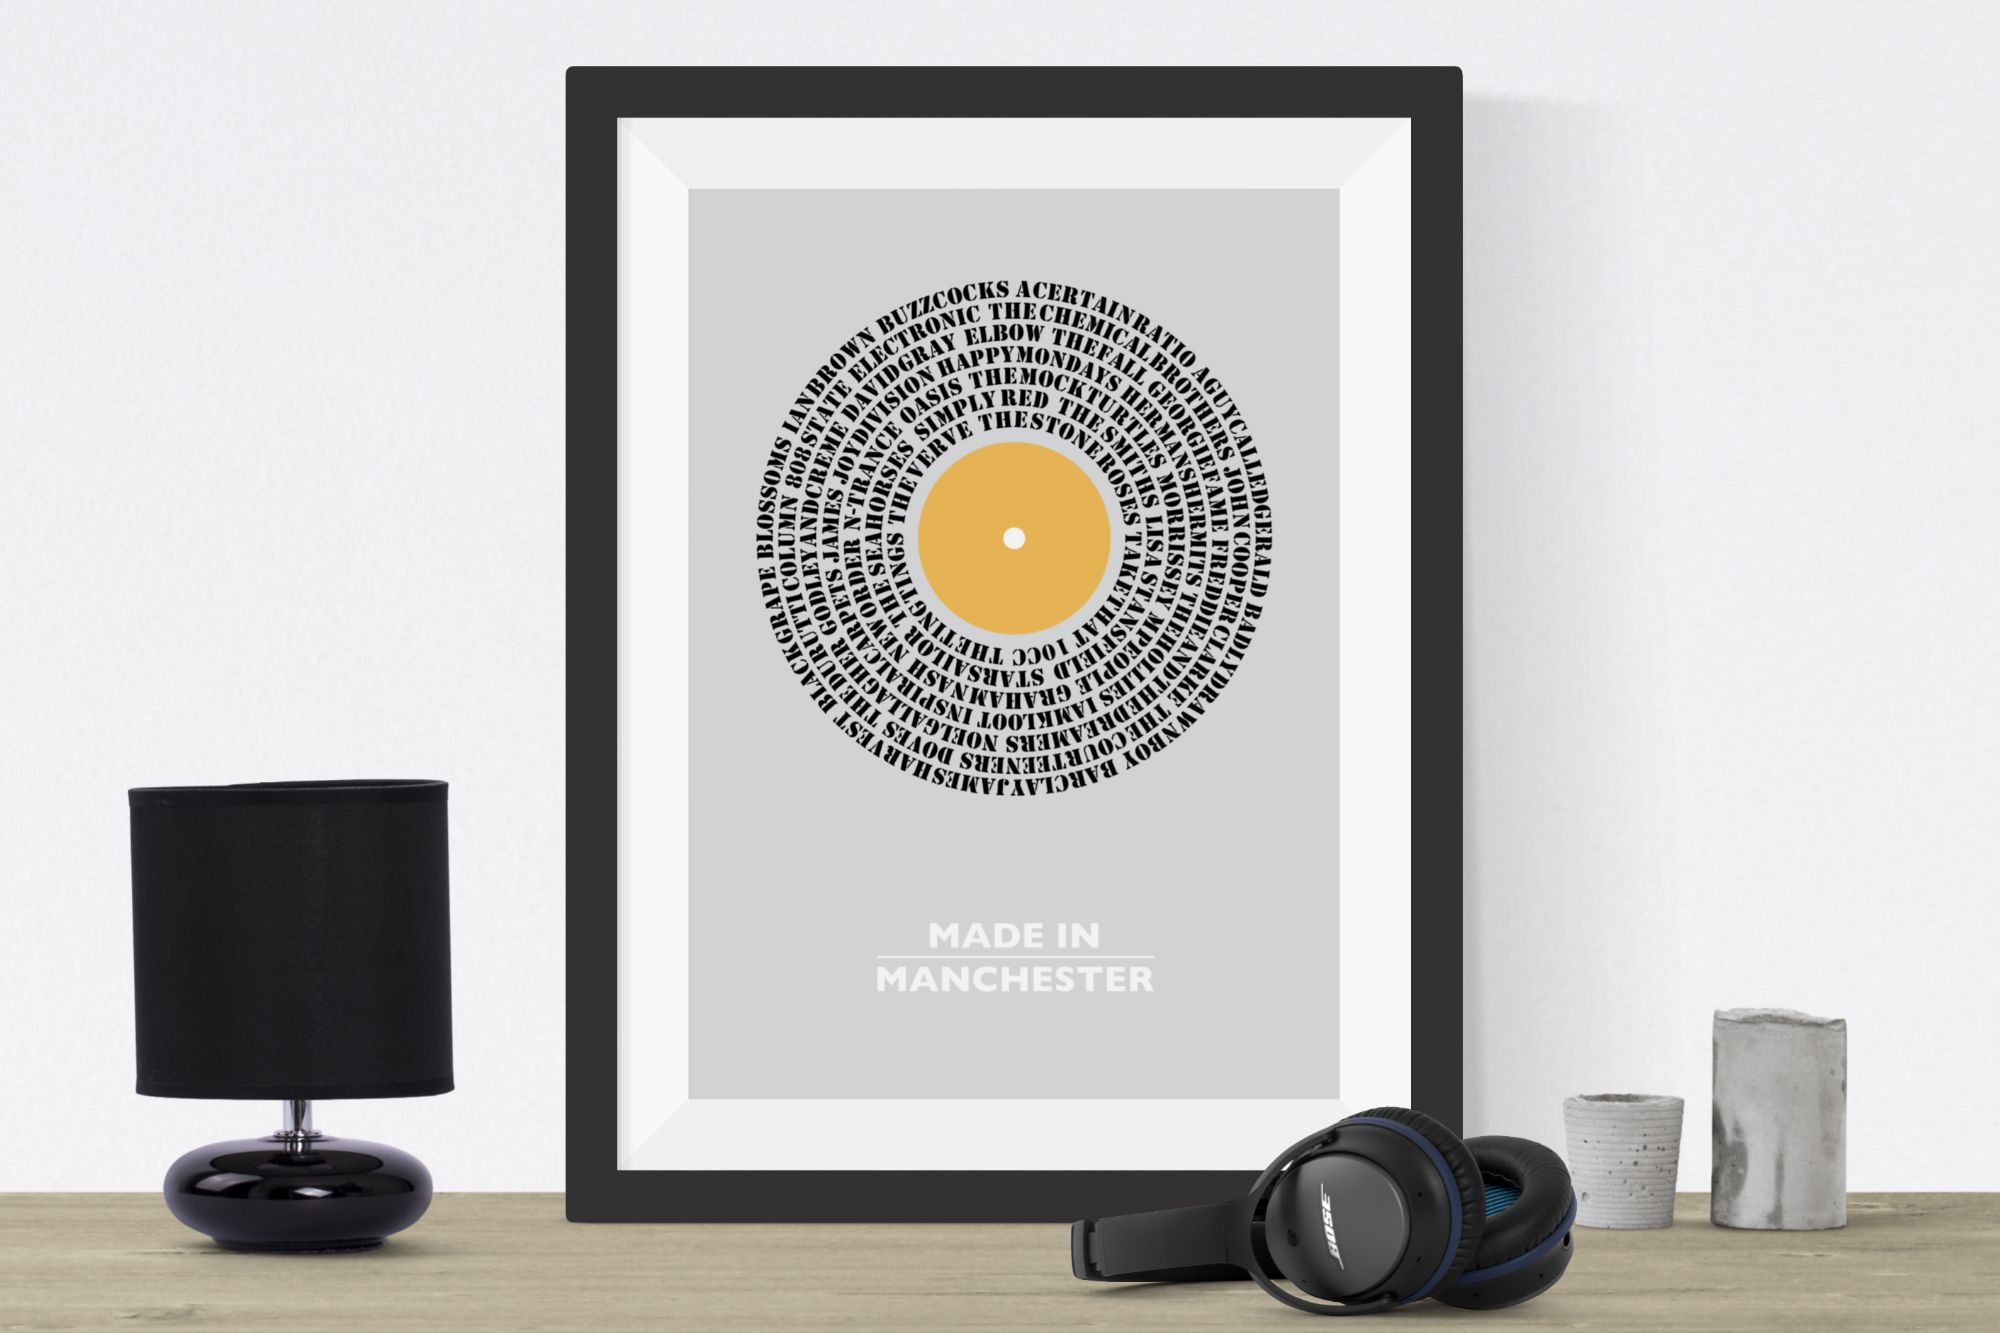 Made-in-Manchester-3x2-darken